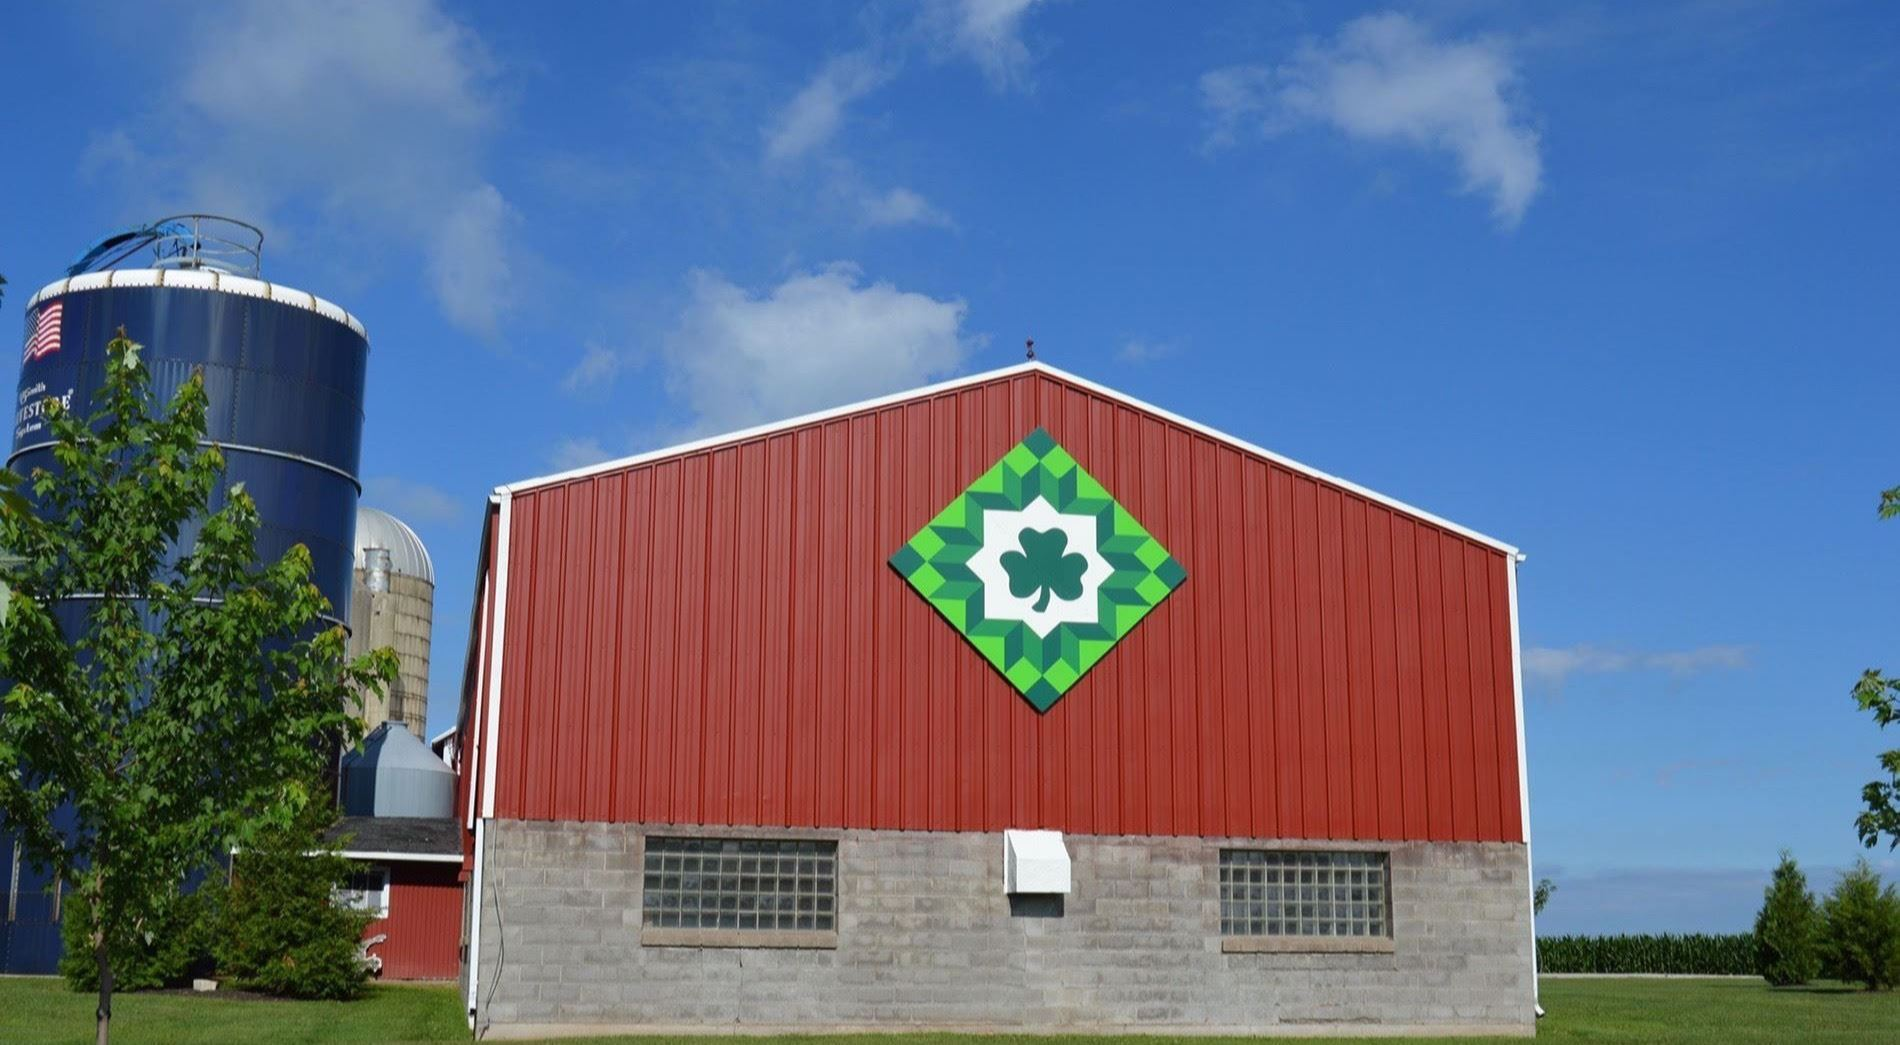 Image of barn quilt on the side of a red barn.